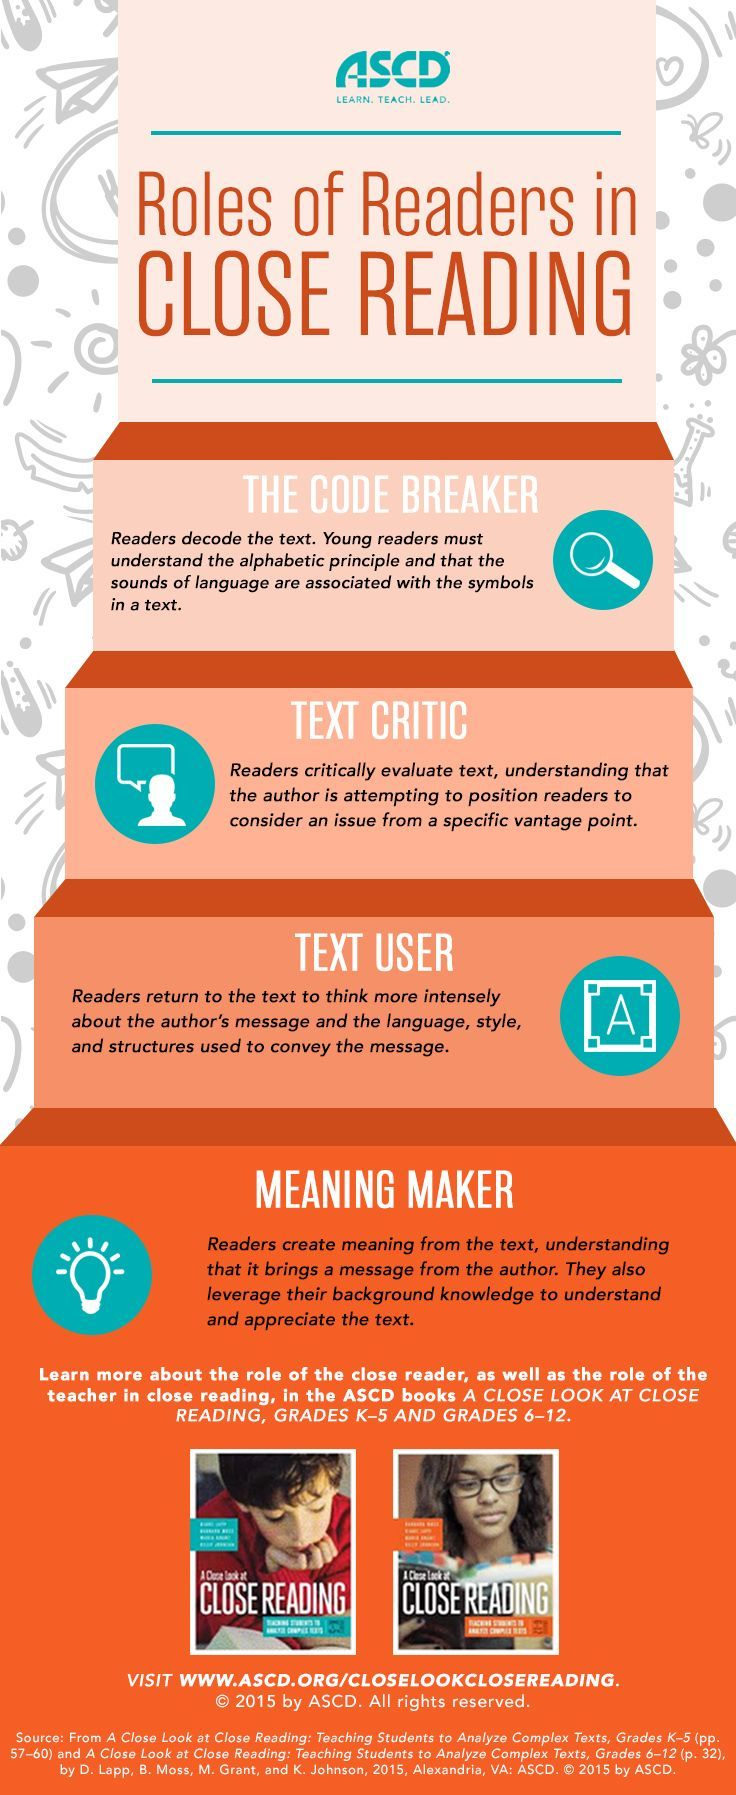 roles of readers in close reading infographic